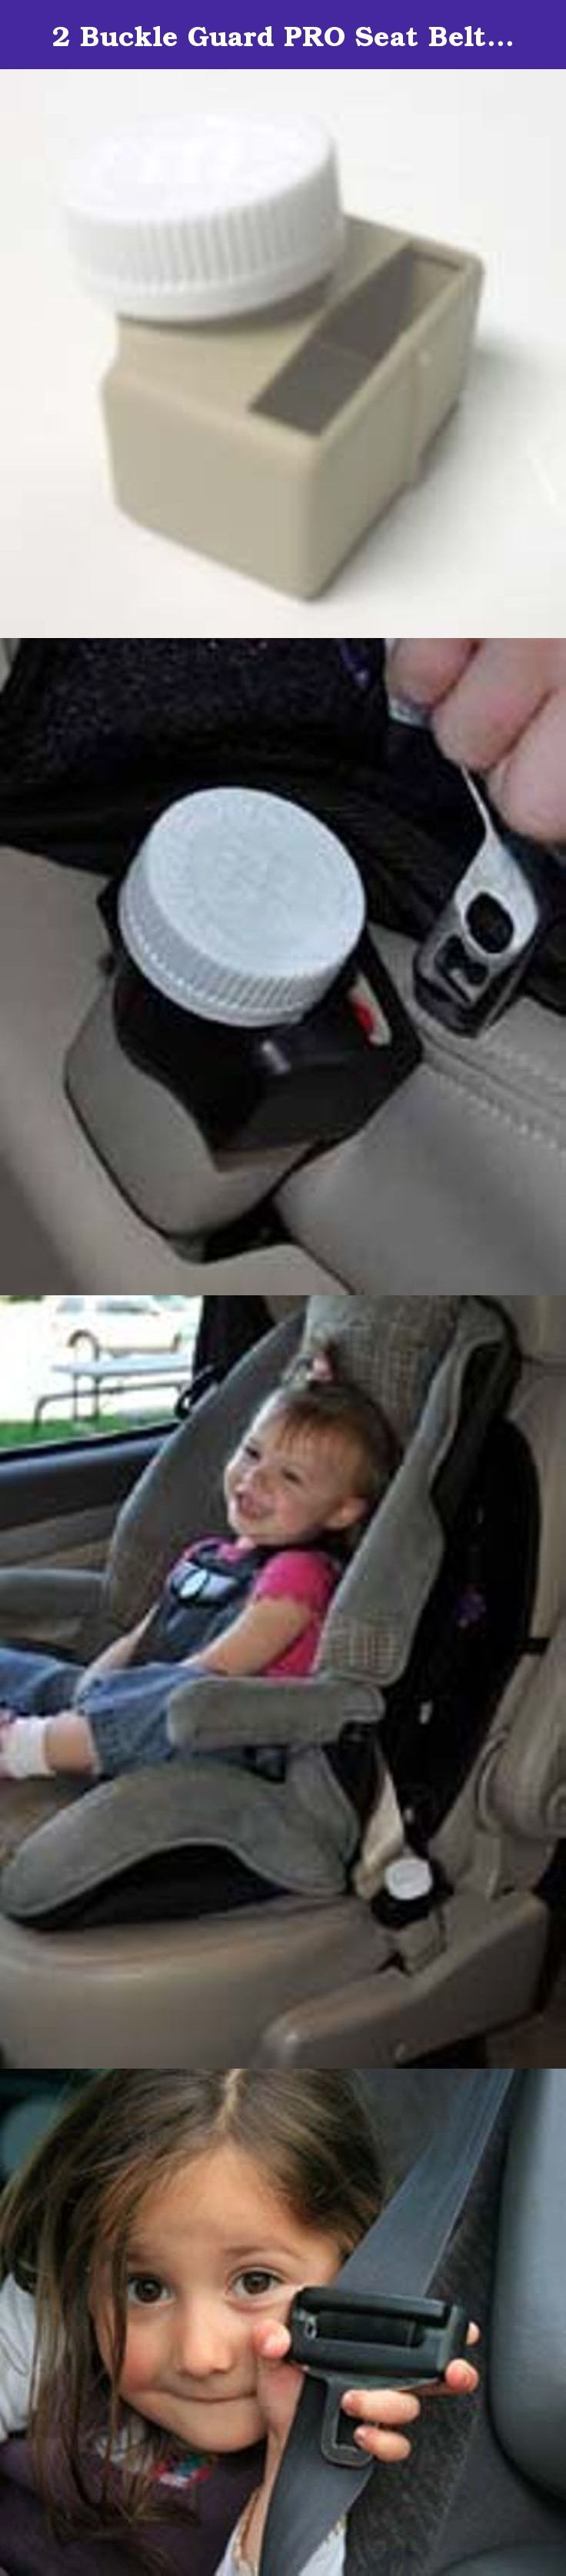 """2 Buckle Guard PRO Seat Belt Button Covers (Tan). Buckle Guard PRO has arrived, and not a minute too soon! In 1994, McNaughton Inc. introduced Seat Belt Buckle GuardTM, the first, patented child safety device that deterred children from unbuckling their seat belts while riding in a motorized vehicle. New Buckle Guard PRO is more universal than the original Buckle Guard and It has a sleek design and, of course, the famous FDA approved """"Push and Turn"""" child safety cap that is used to secure..."""